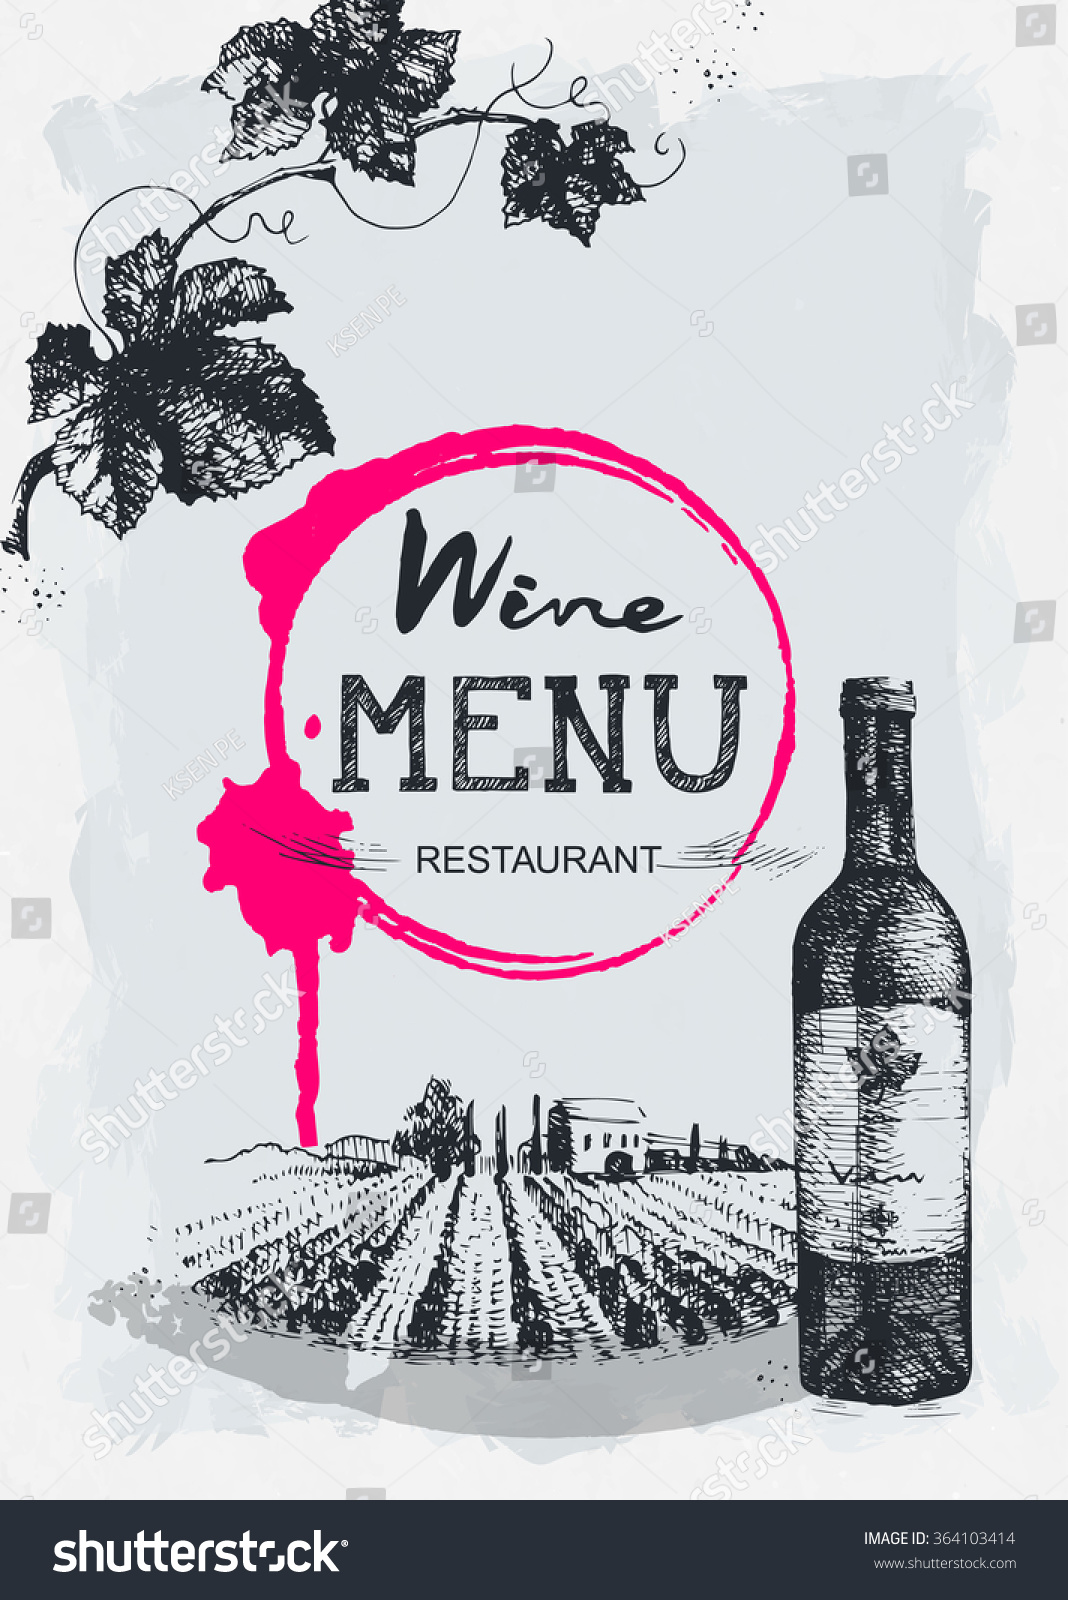 Wine menu restaurant brochure design stock vector